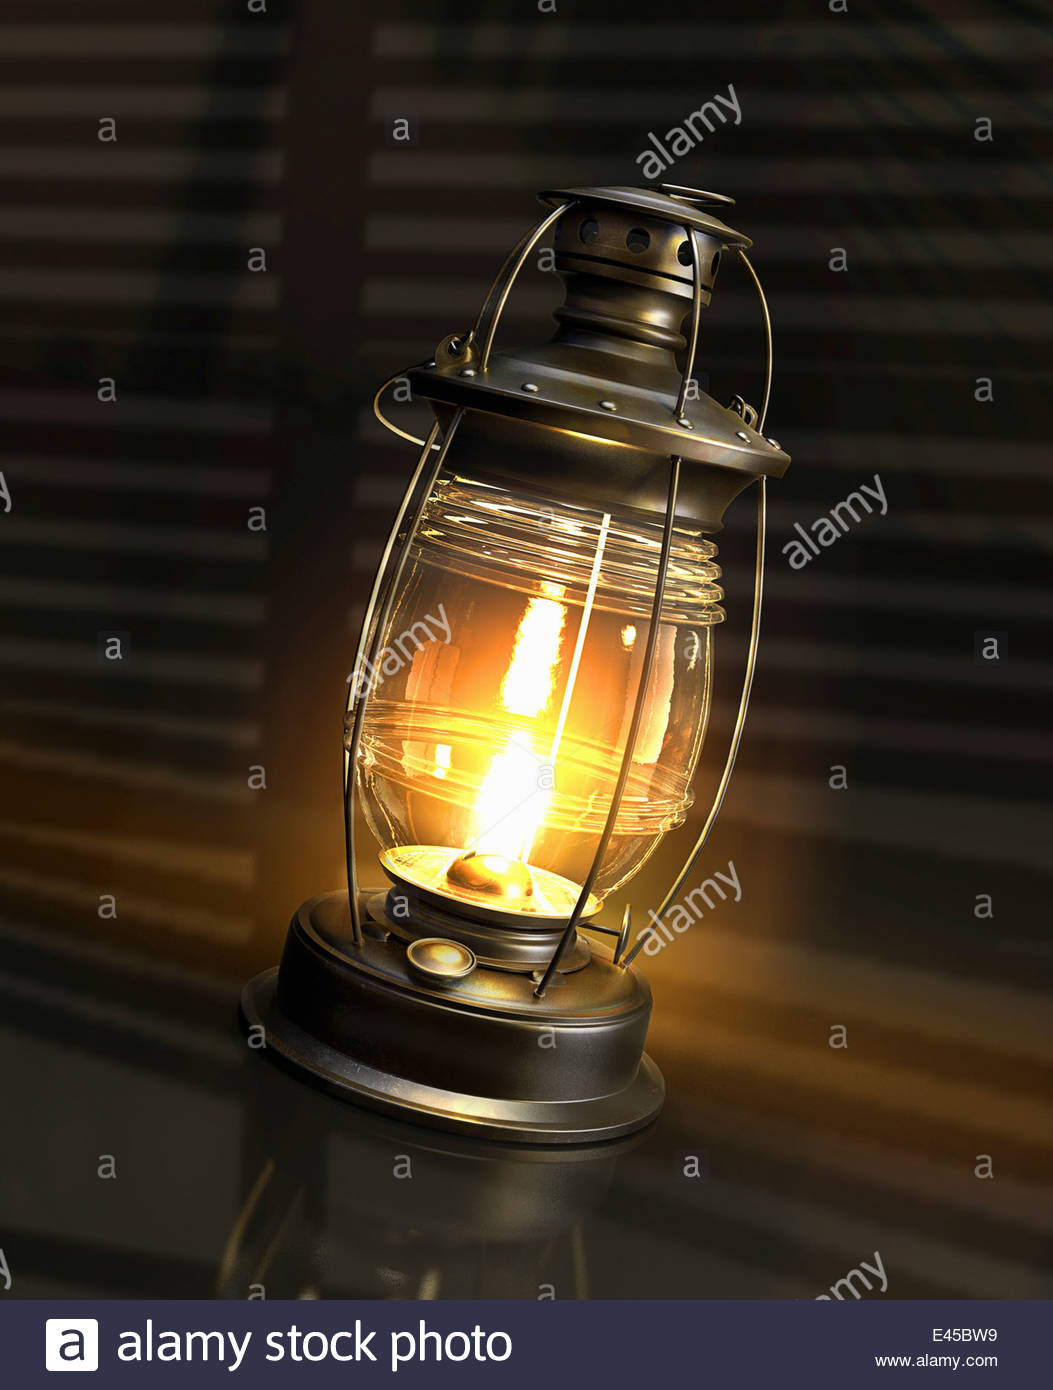 Illuminated glowing paraffin lamp - Stock Image